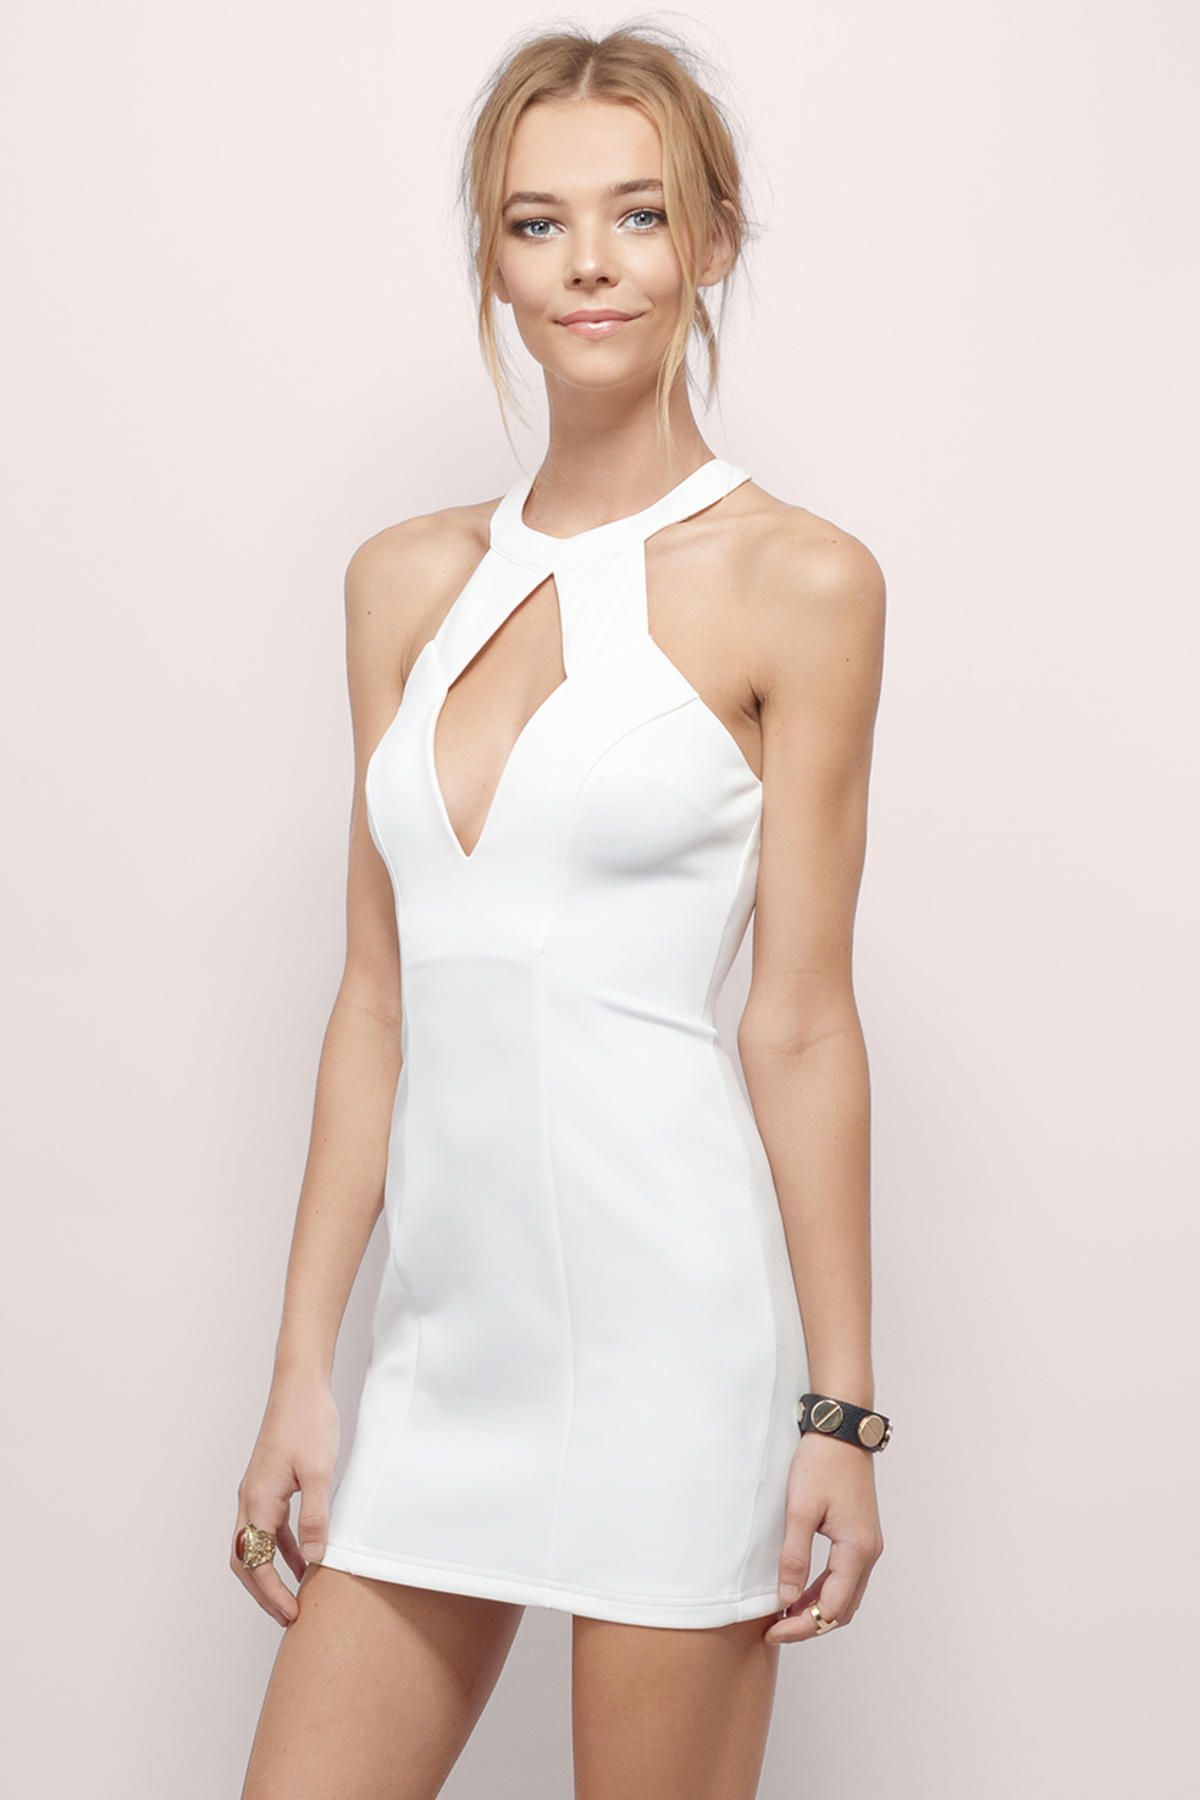 Ivory Eat Your Heart Out Mini Dress at $24 (was $62)